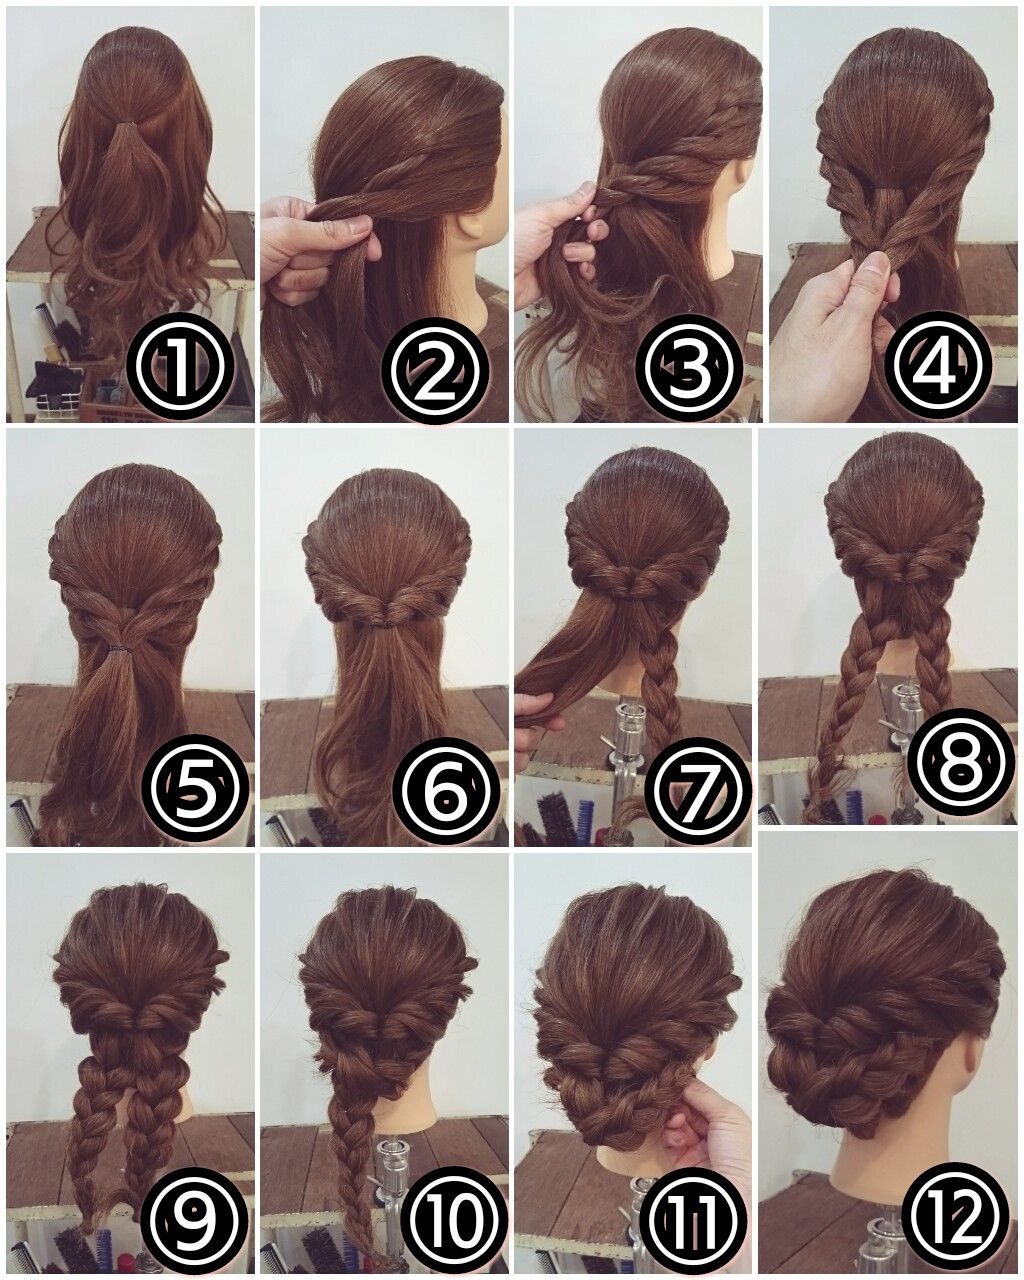 Hair braid bun peinados pinterest hair style updos and makeup